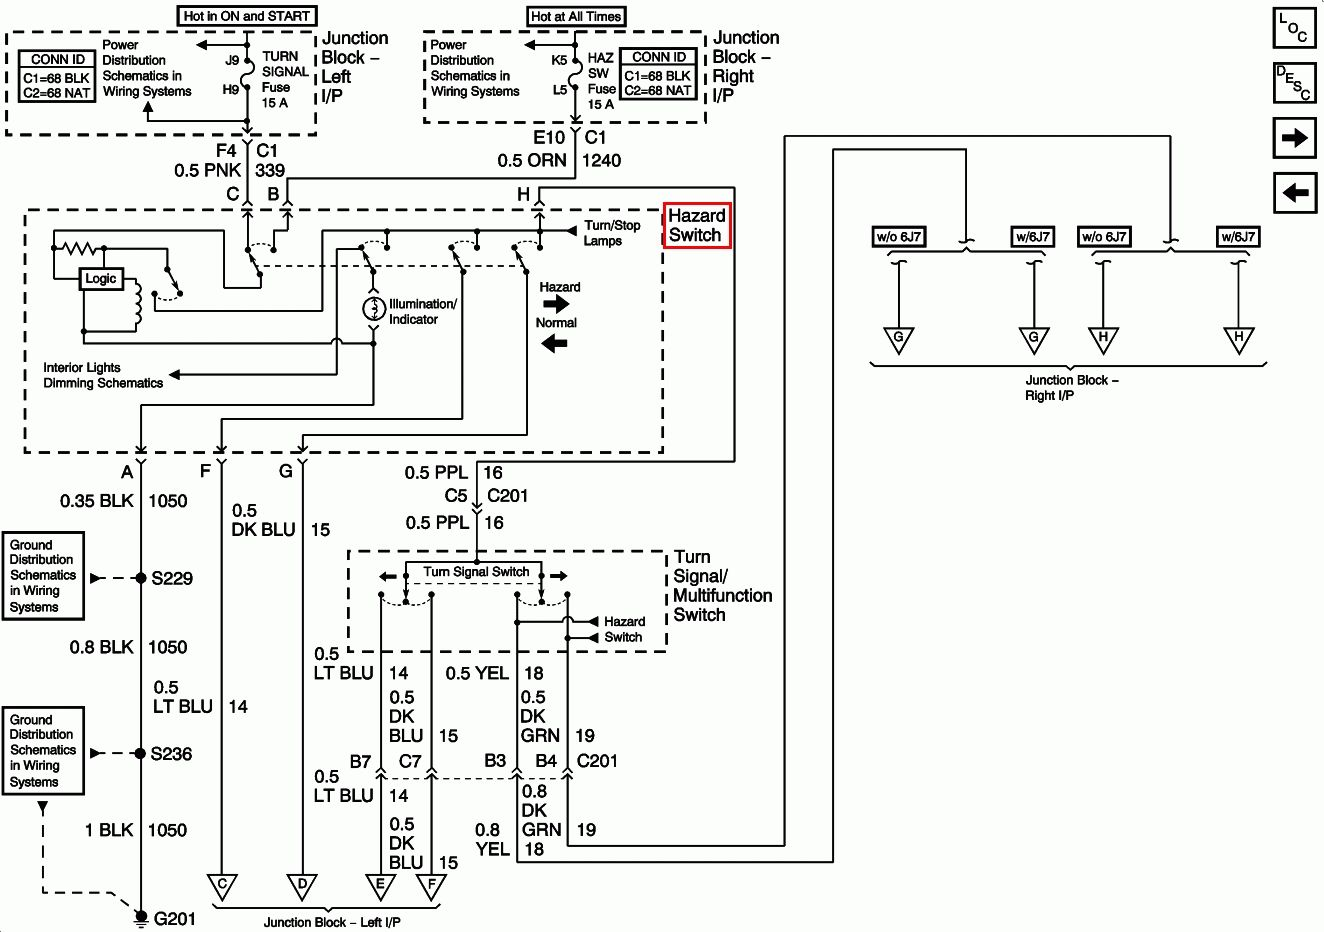 2001 Chevy Impala Turn Signal Wiring Diagram | WiringDiagram.org Circuit  Diagram, Chevy Impala